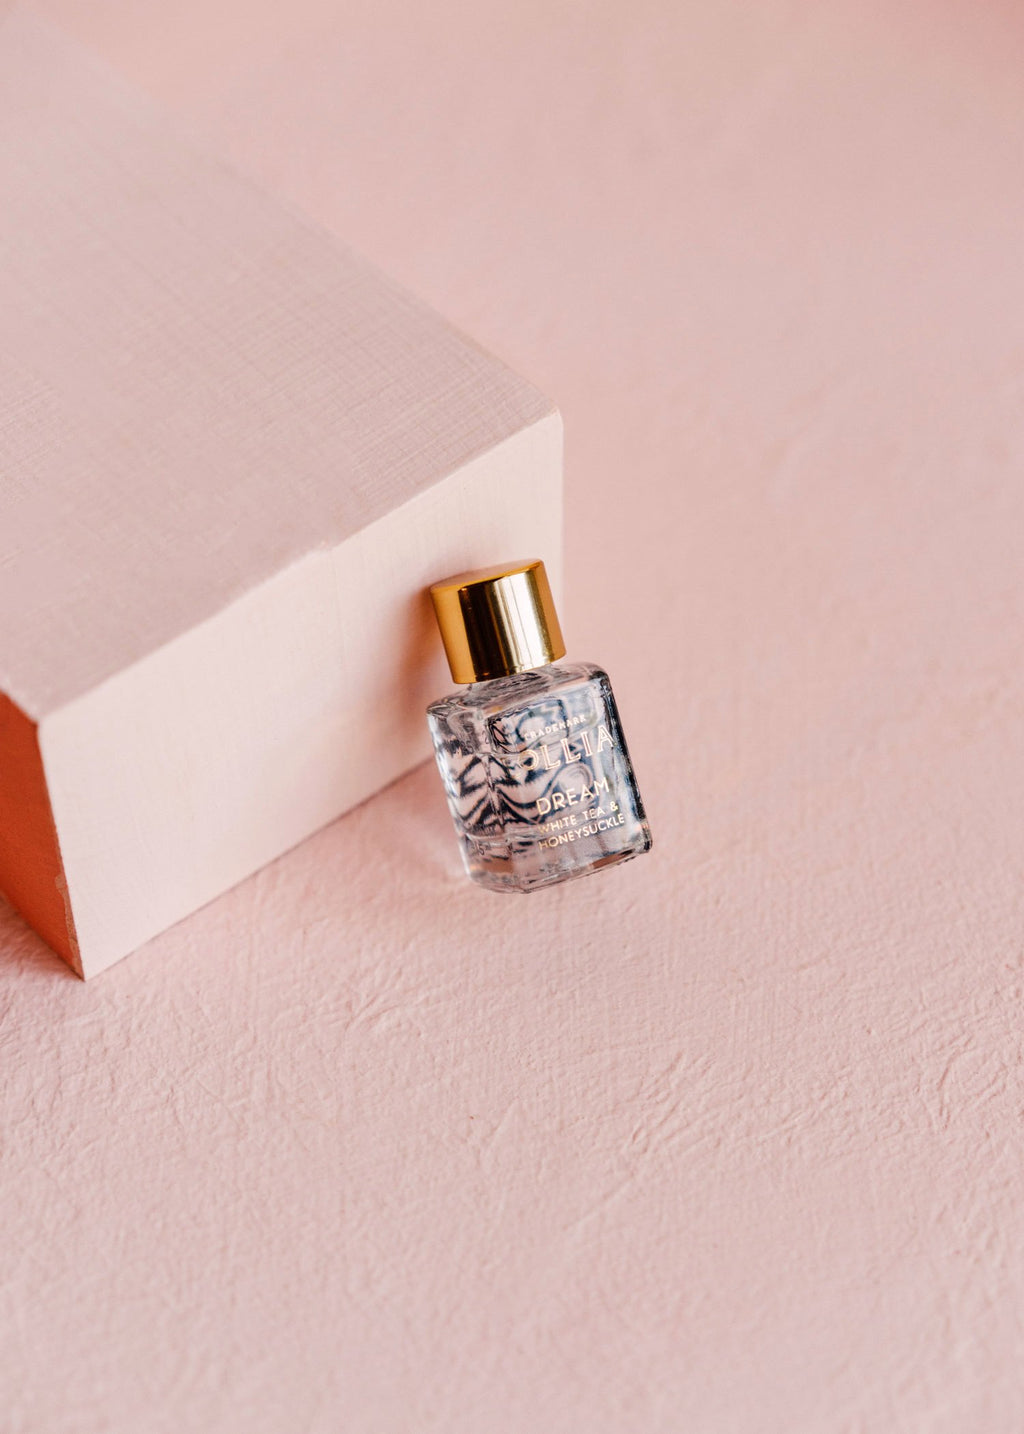 Lollia Dream Little Luxe mini Eau de Parfum